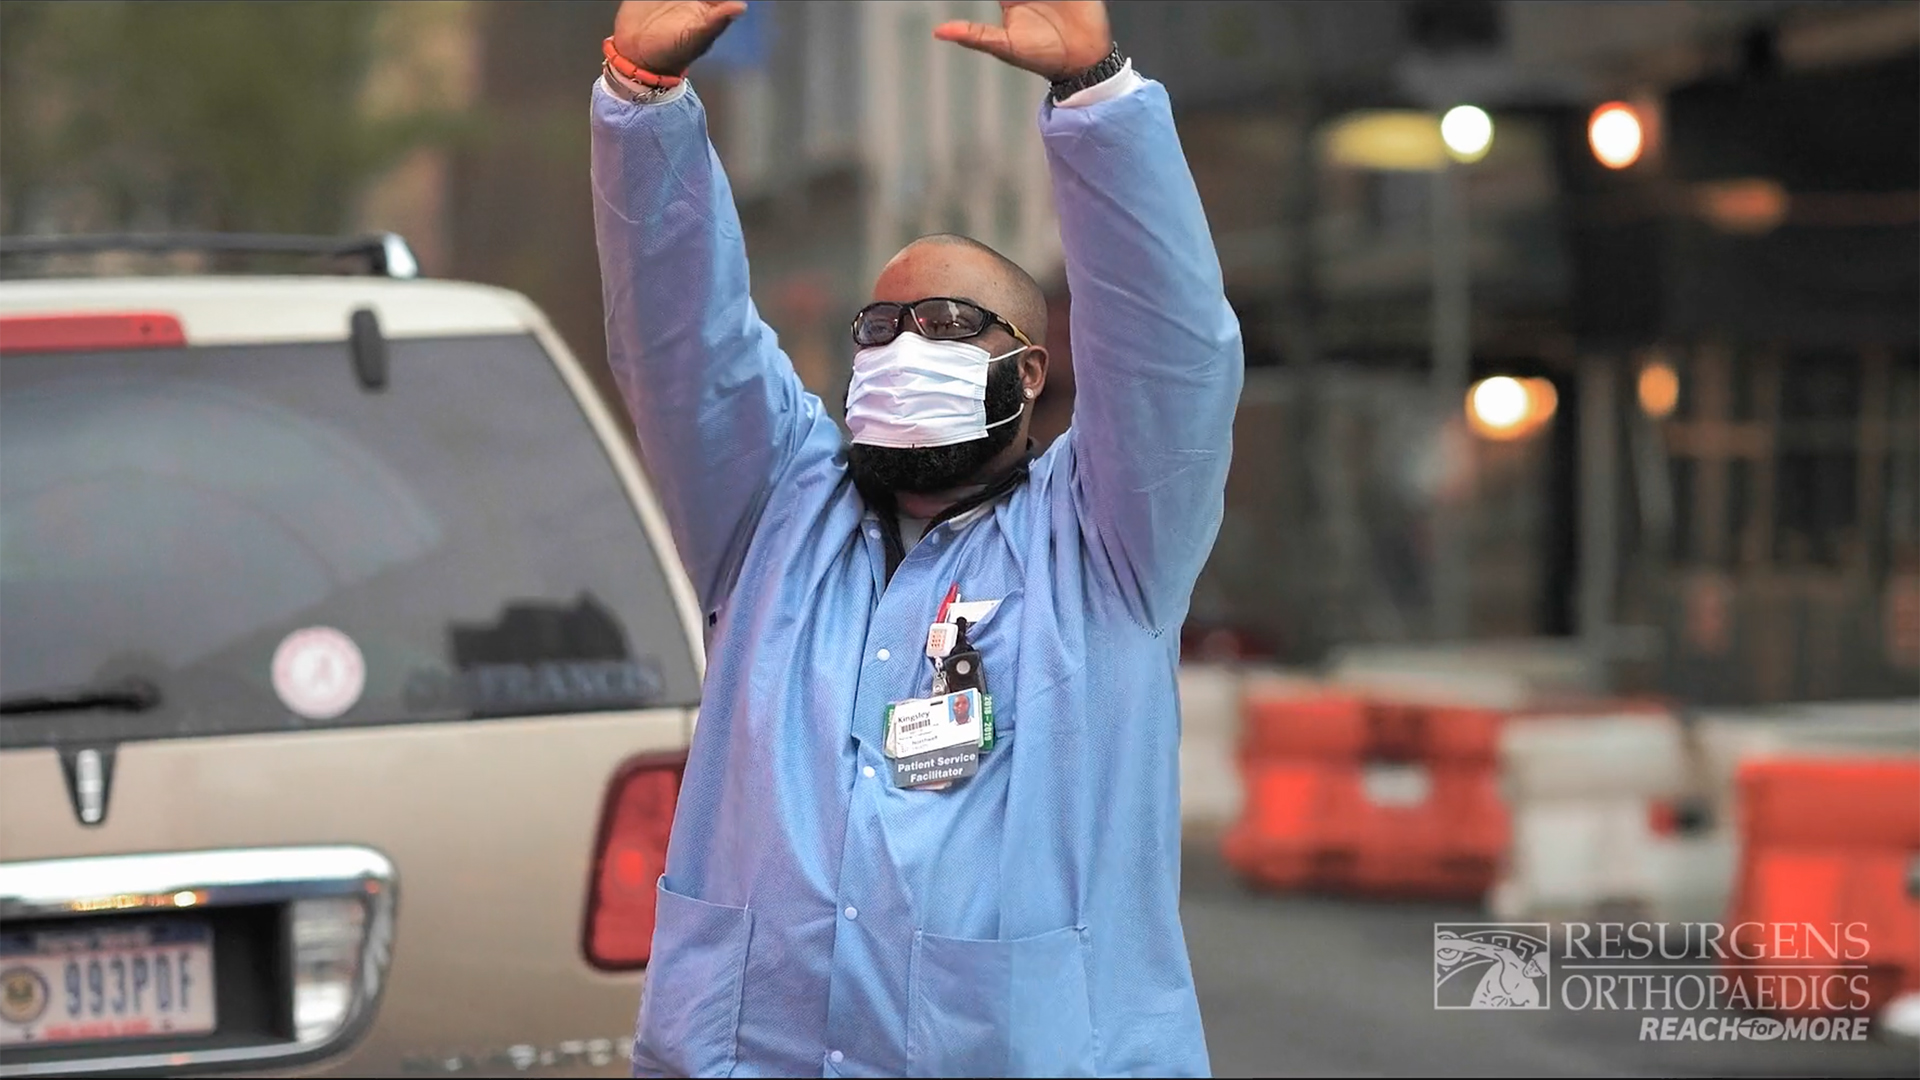 A medical professional standing in the street waves his hands as he keeps reaching.